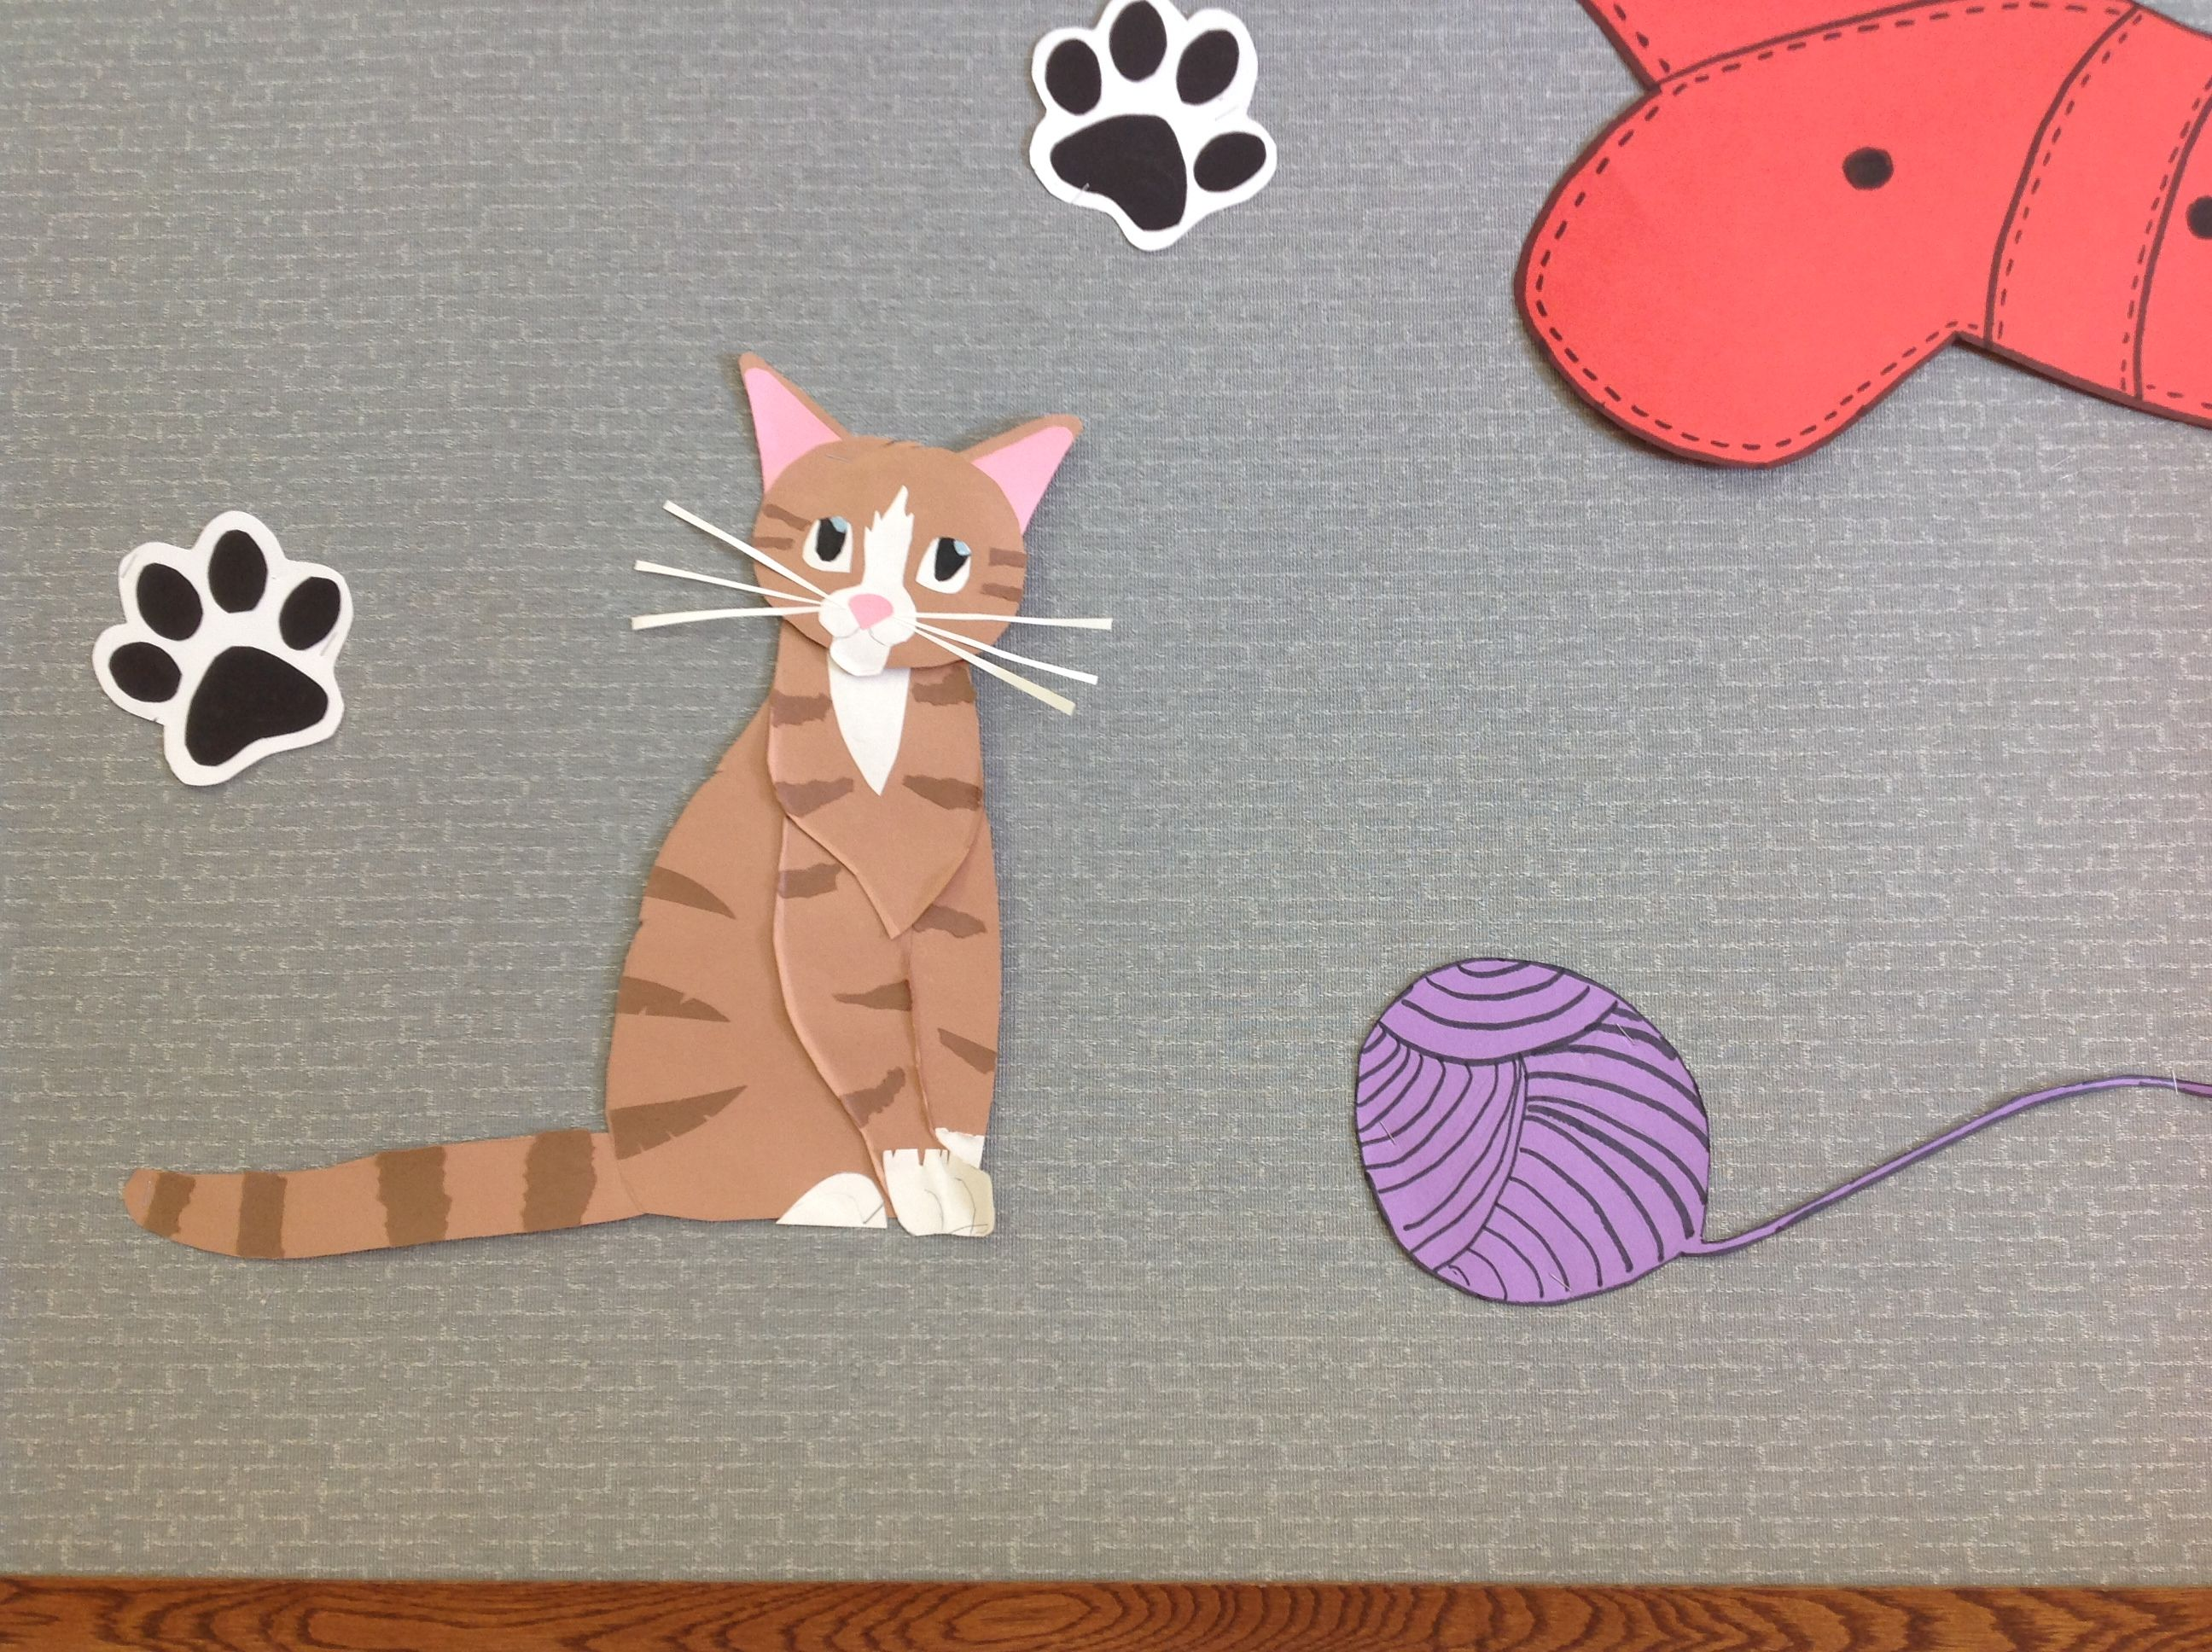 Construction Paper Cat Paw Prints And Ball Of Yarn For